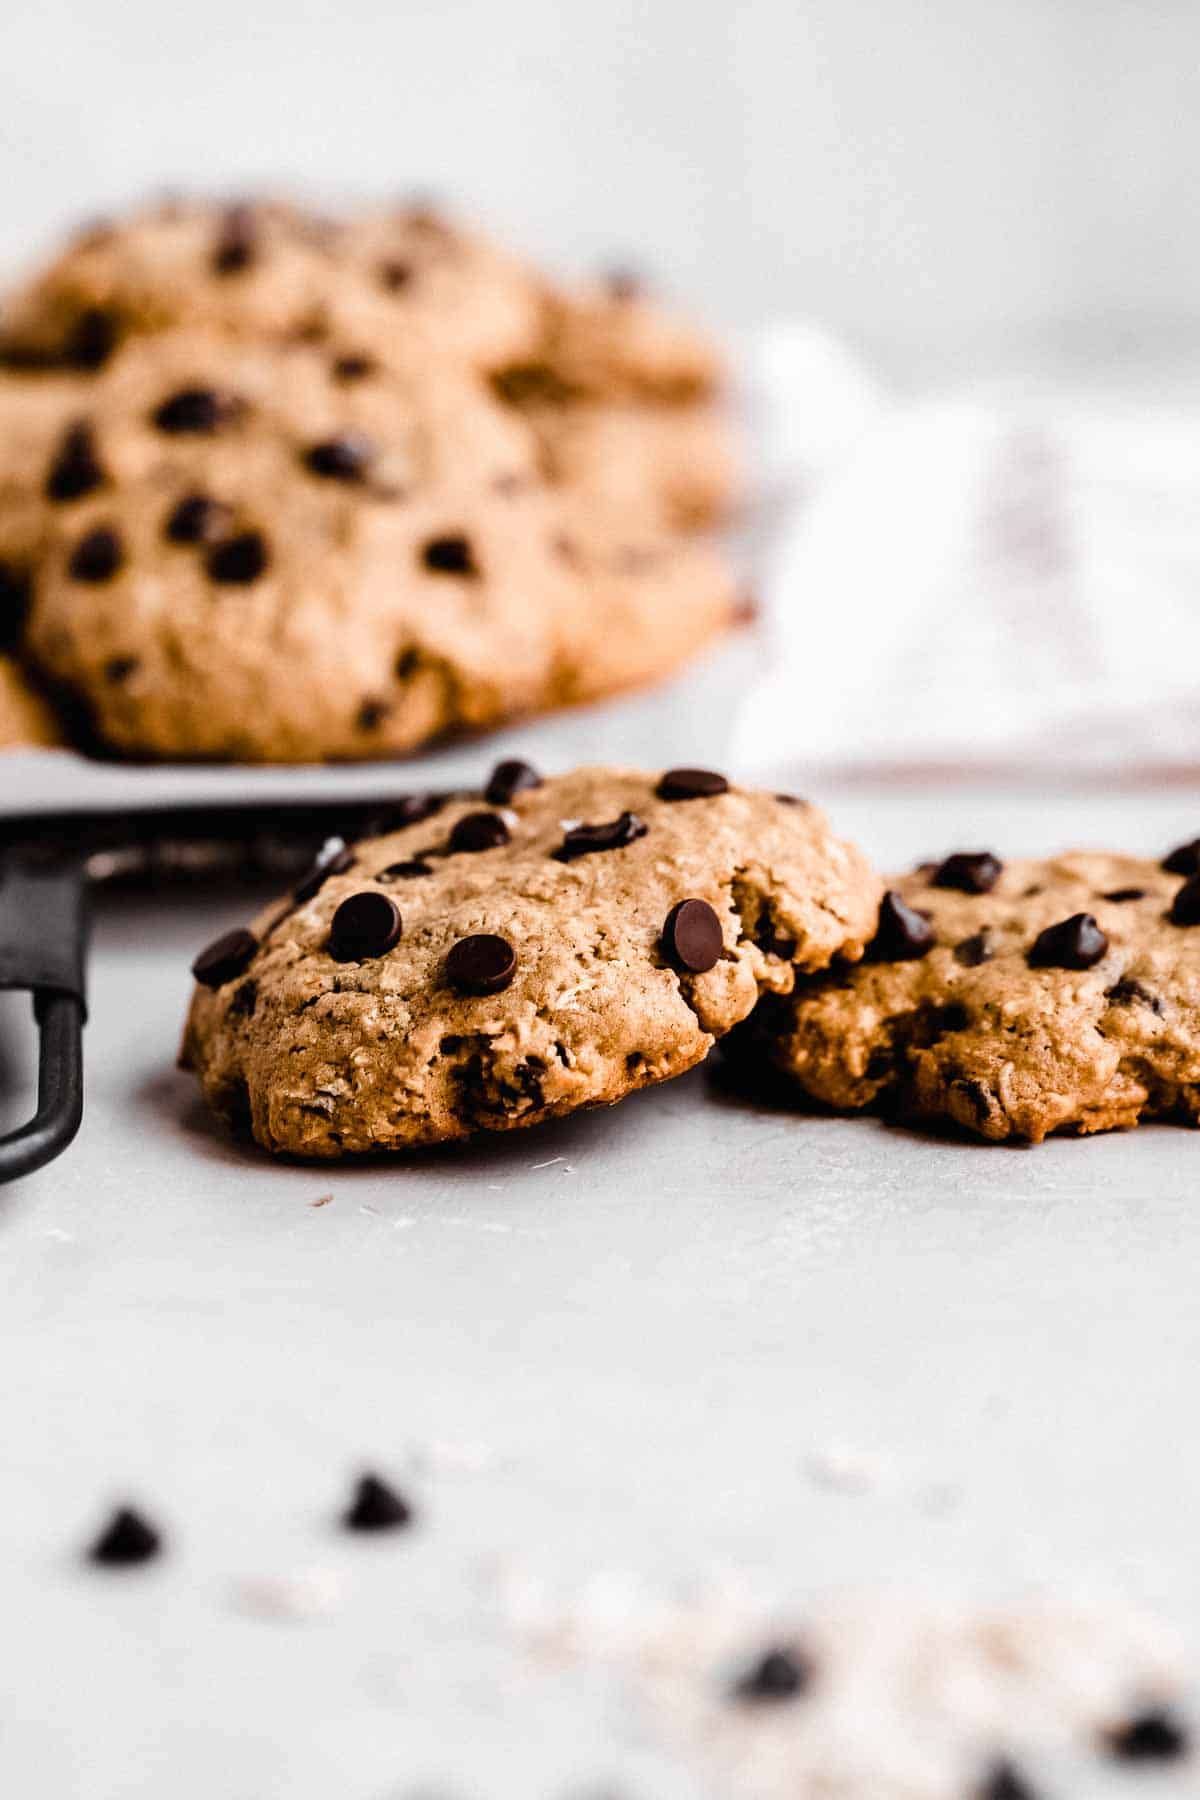 Side view image of two Oatmeal Chocolate Chip Cookies on a marble slab.  Additional cookies are on a cooling rack on the background.